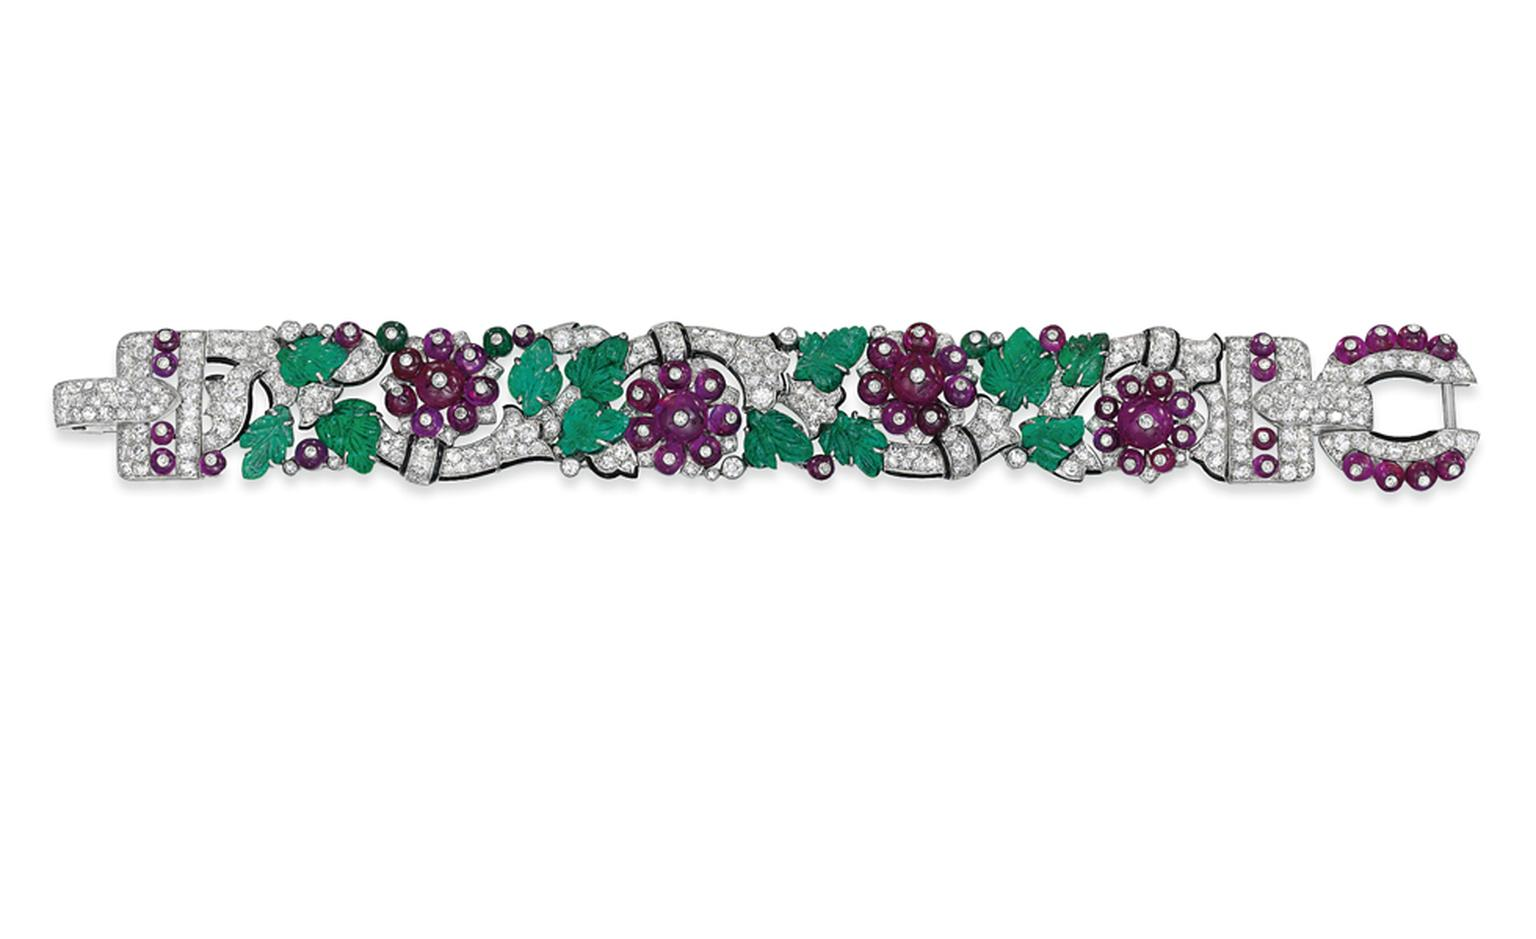 Lot 160. An exceptional art deco 'Tuttie Frutti' bracelet, by Cartier. Estimate £300,000-£400,000. SOLD FOR £1,150,050